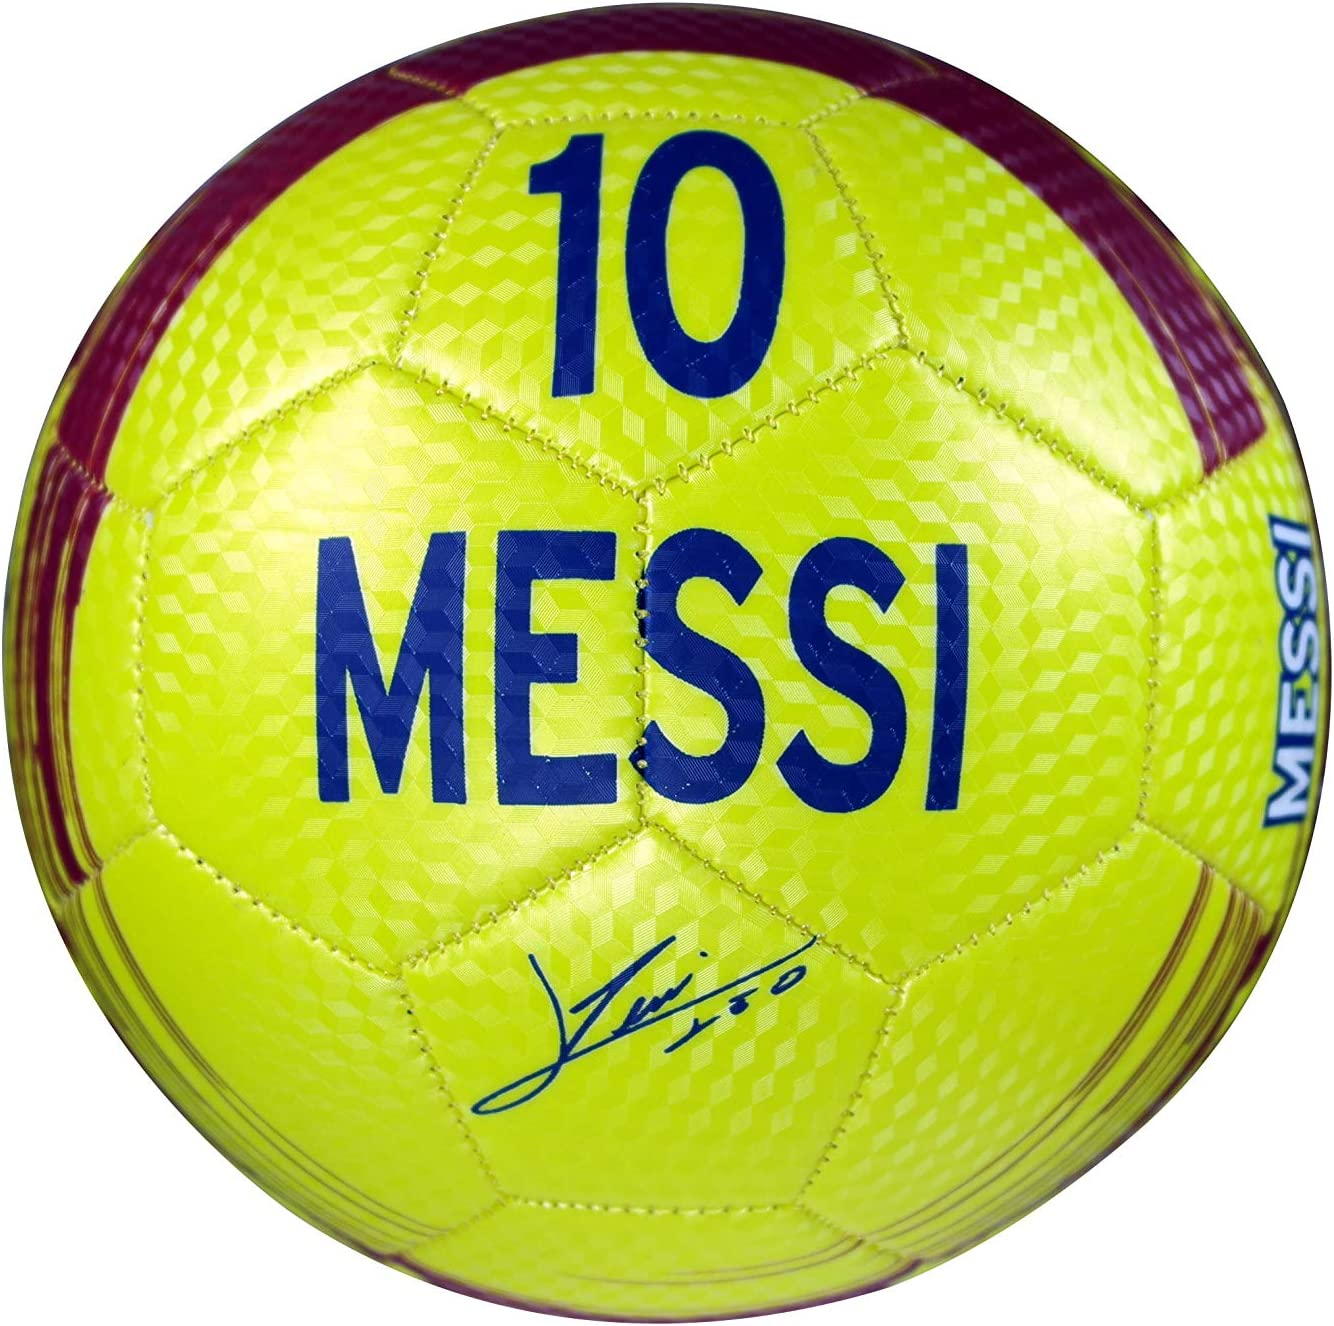 FC Barcelona Authentic Official Messi 10 Licensed Signature Soccer Ball Size 3 01 2